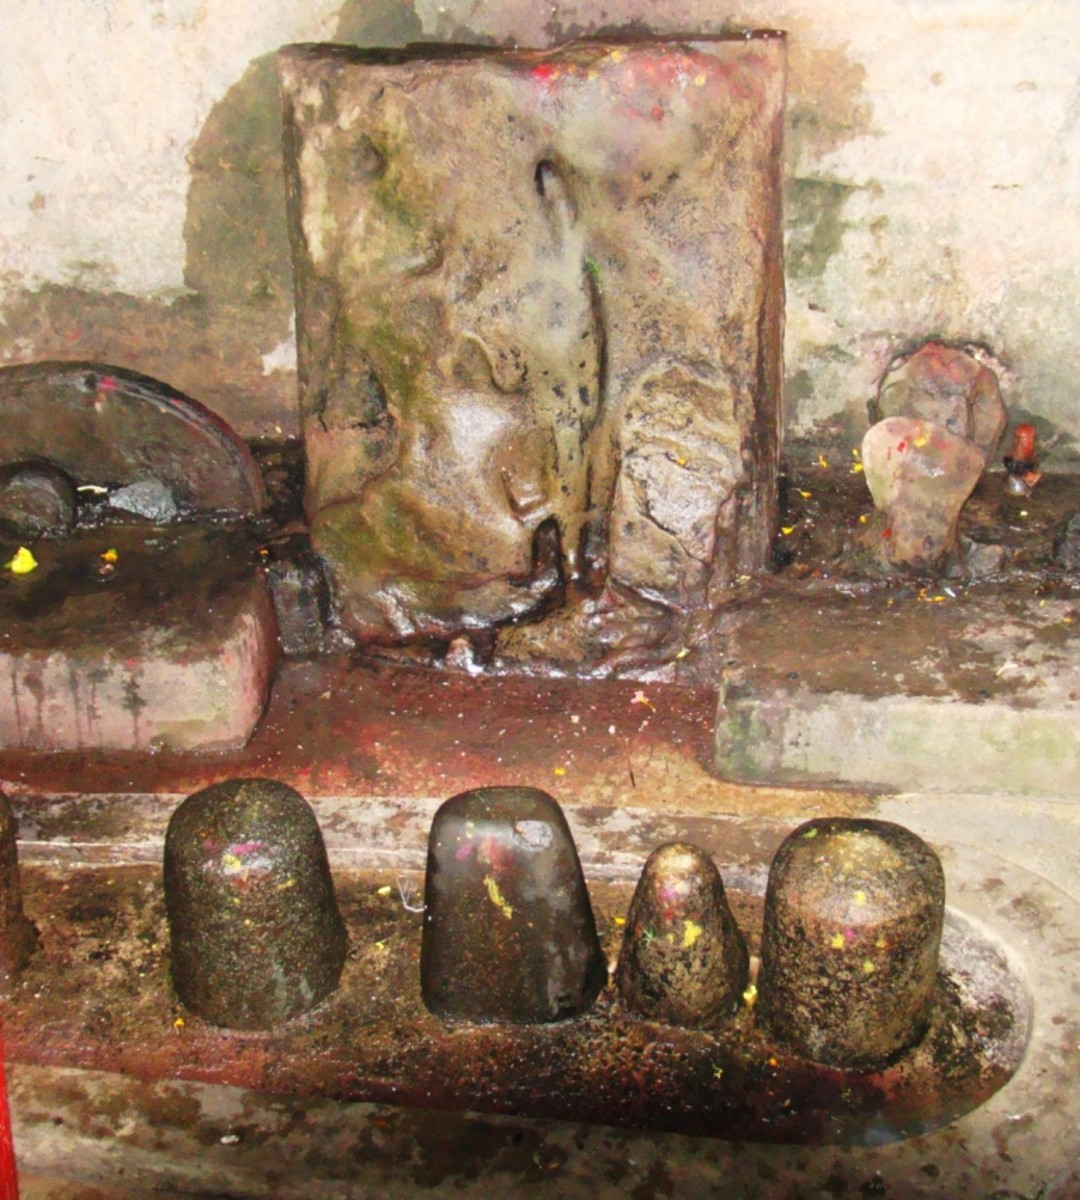 Inside temple no. 3 -- you can see the 4 Shiva lingams in front & 1 on the left behind.